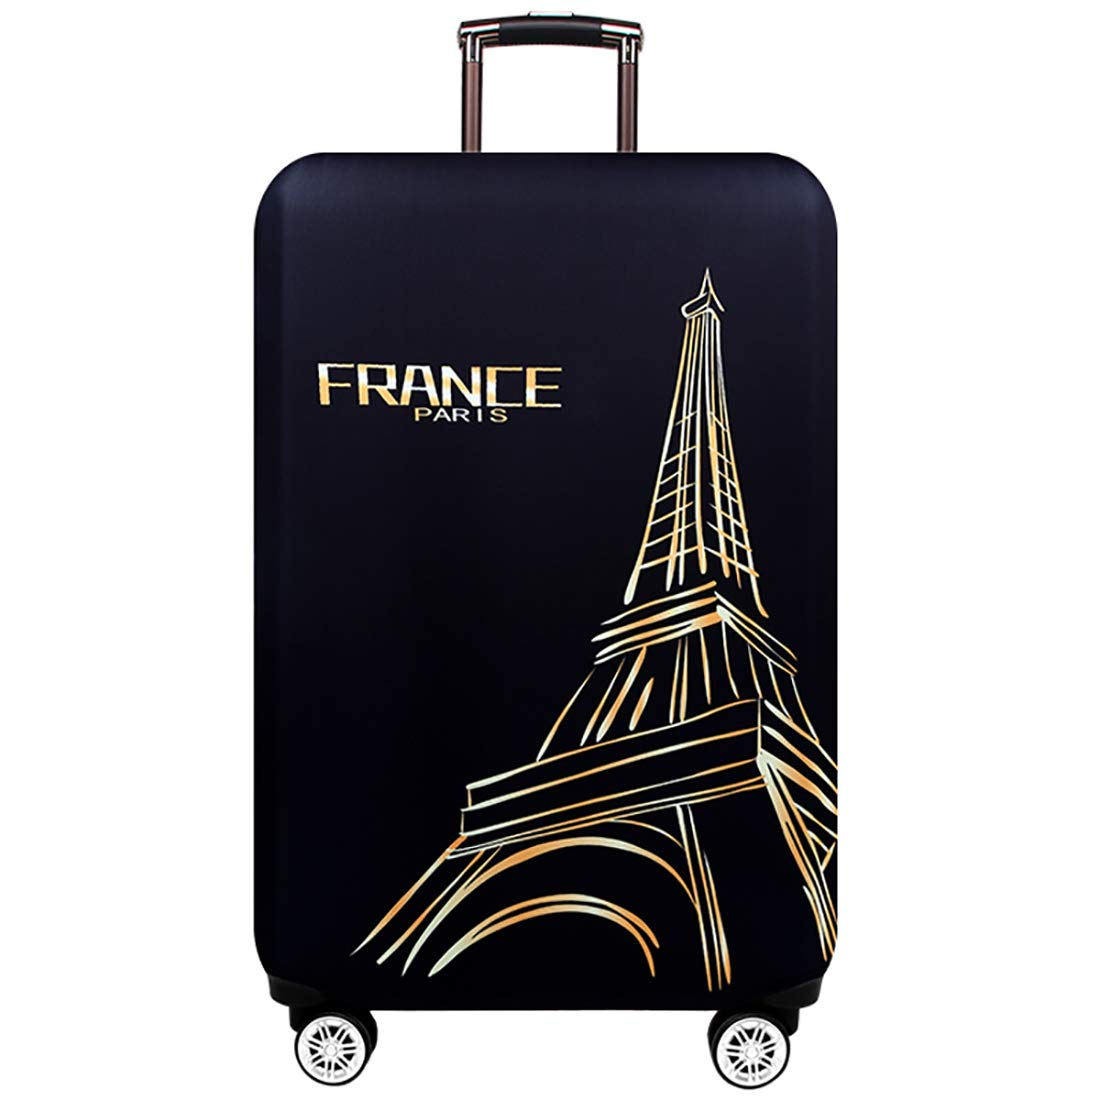 TRAVELKIN Washable Travel Gear Cover, Thickened Luggage Cover, 18/24/28/32 Inch Suitcase Spandex Protective Cover (XL(29''-32''luggage), Paris) by TRAVEL KIN